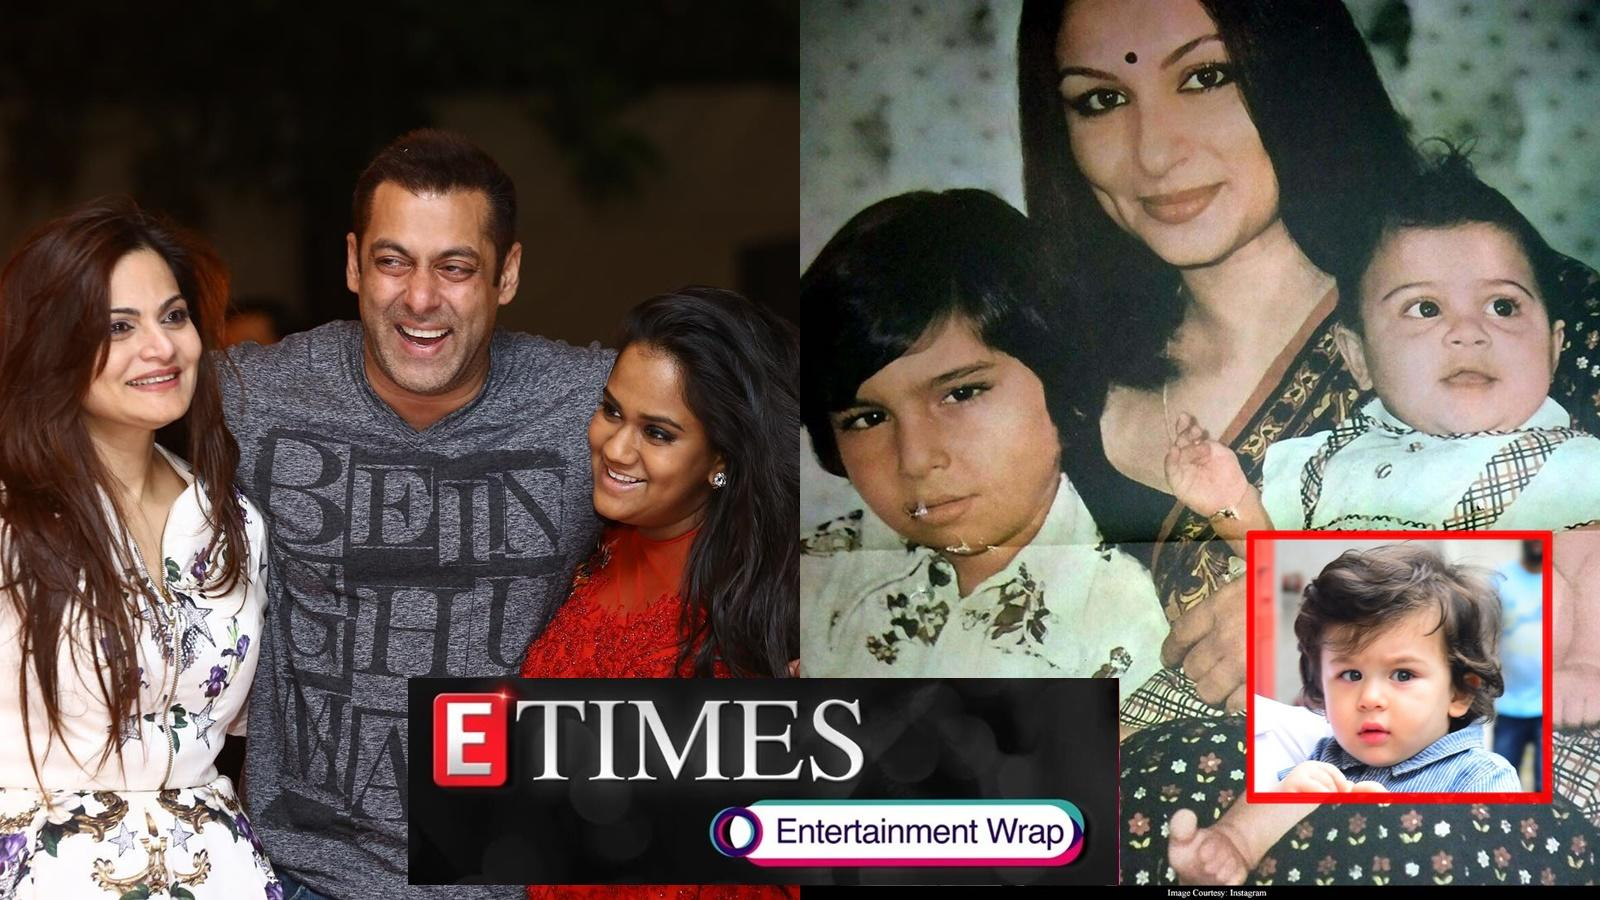 arpita-khan-to-welcome-her-second-baby-on-salman-khans-birthday-saif-ali-khans-childhood-pic-proves-that-son-taimur-is-his-spitting-image-and-more-